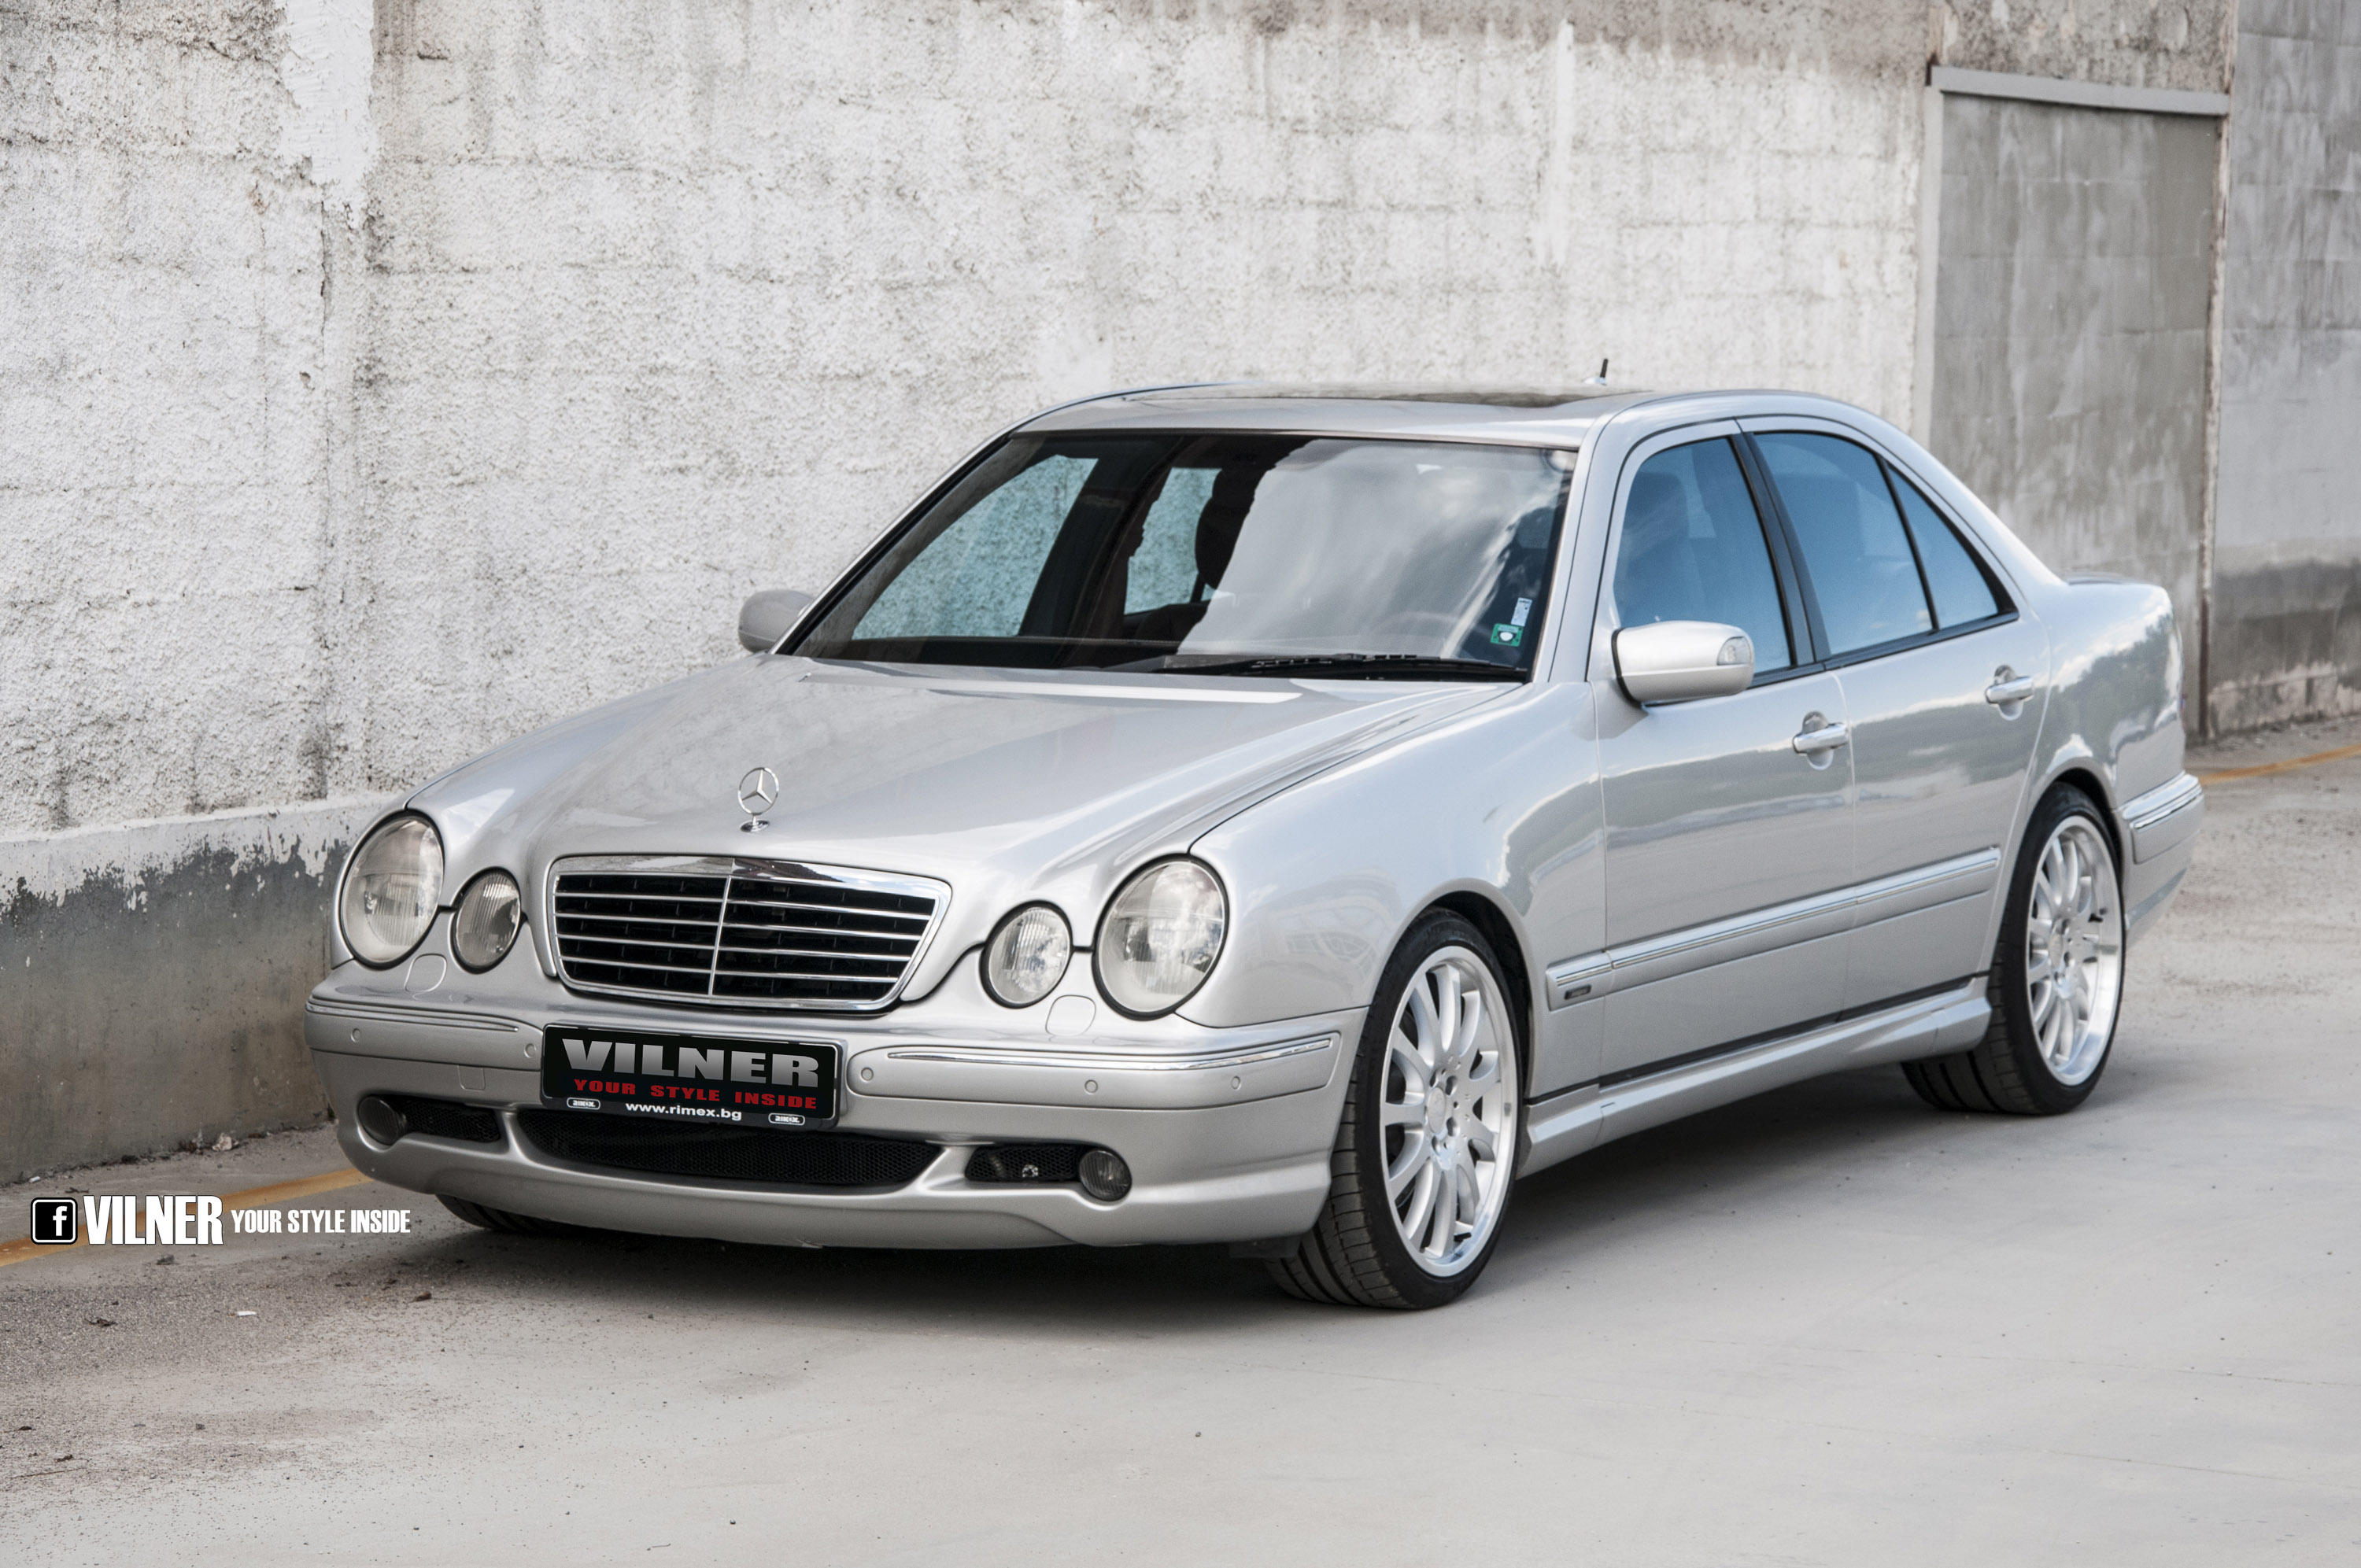 vilner-mercedes-benz-e55-amg-4matic-01 Interesting Info About 2001 E55 Amg with Terrific Images Cars Review